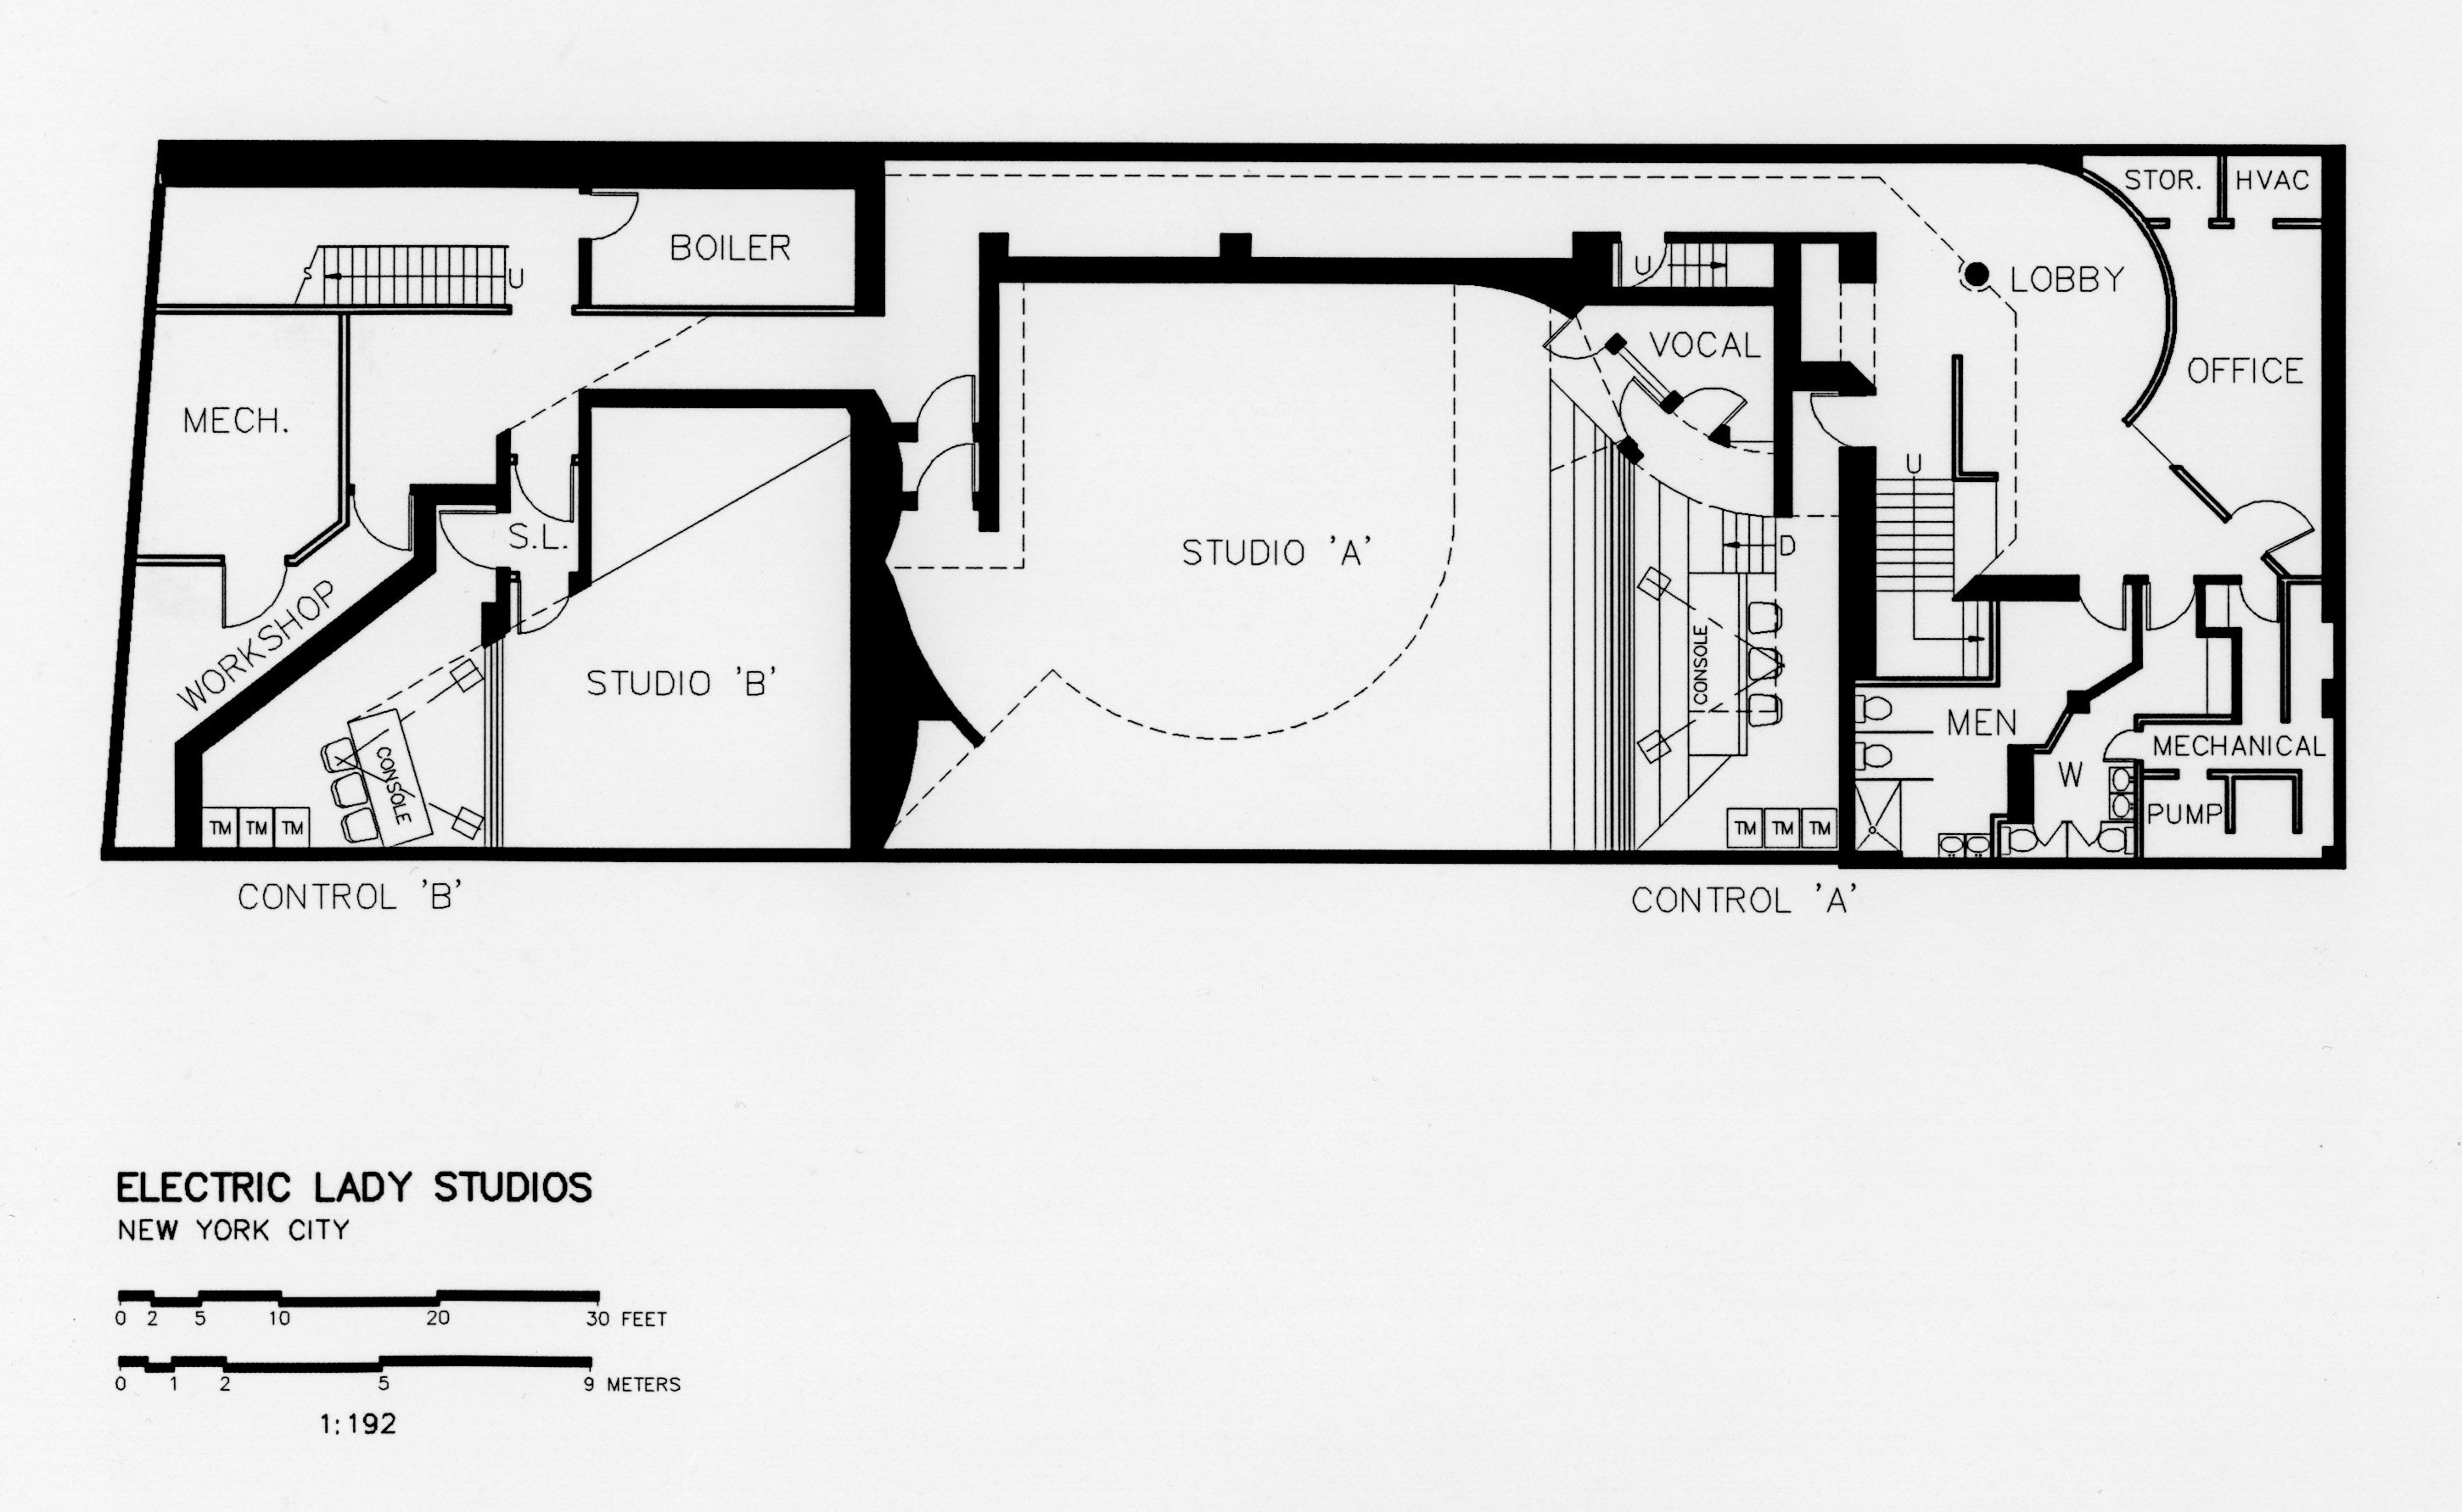 Basement Floor Plan Electric Lady Studios New York